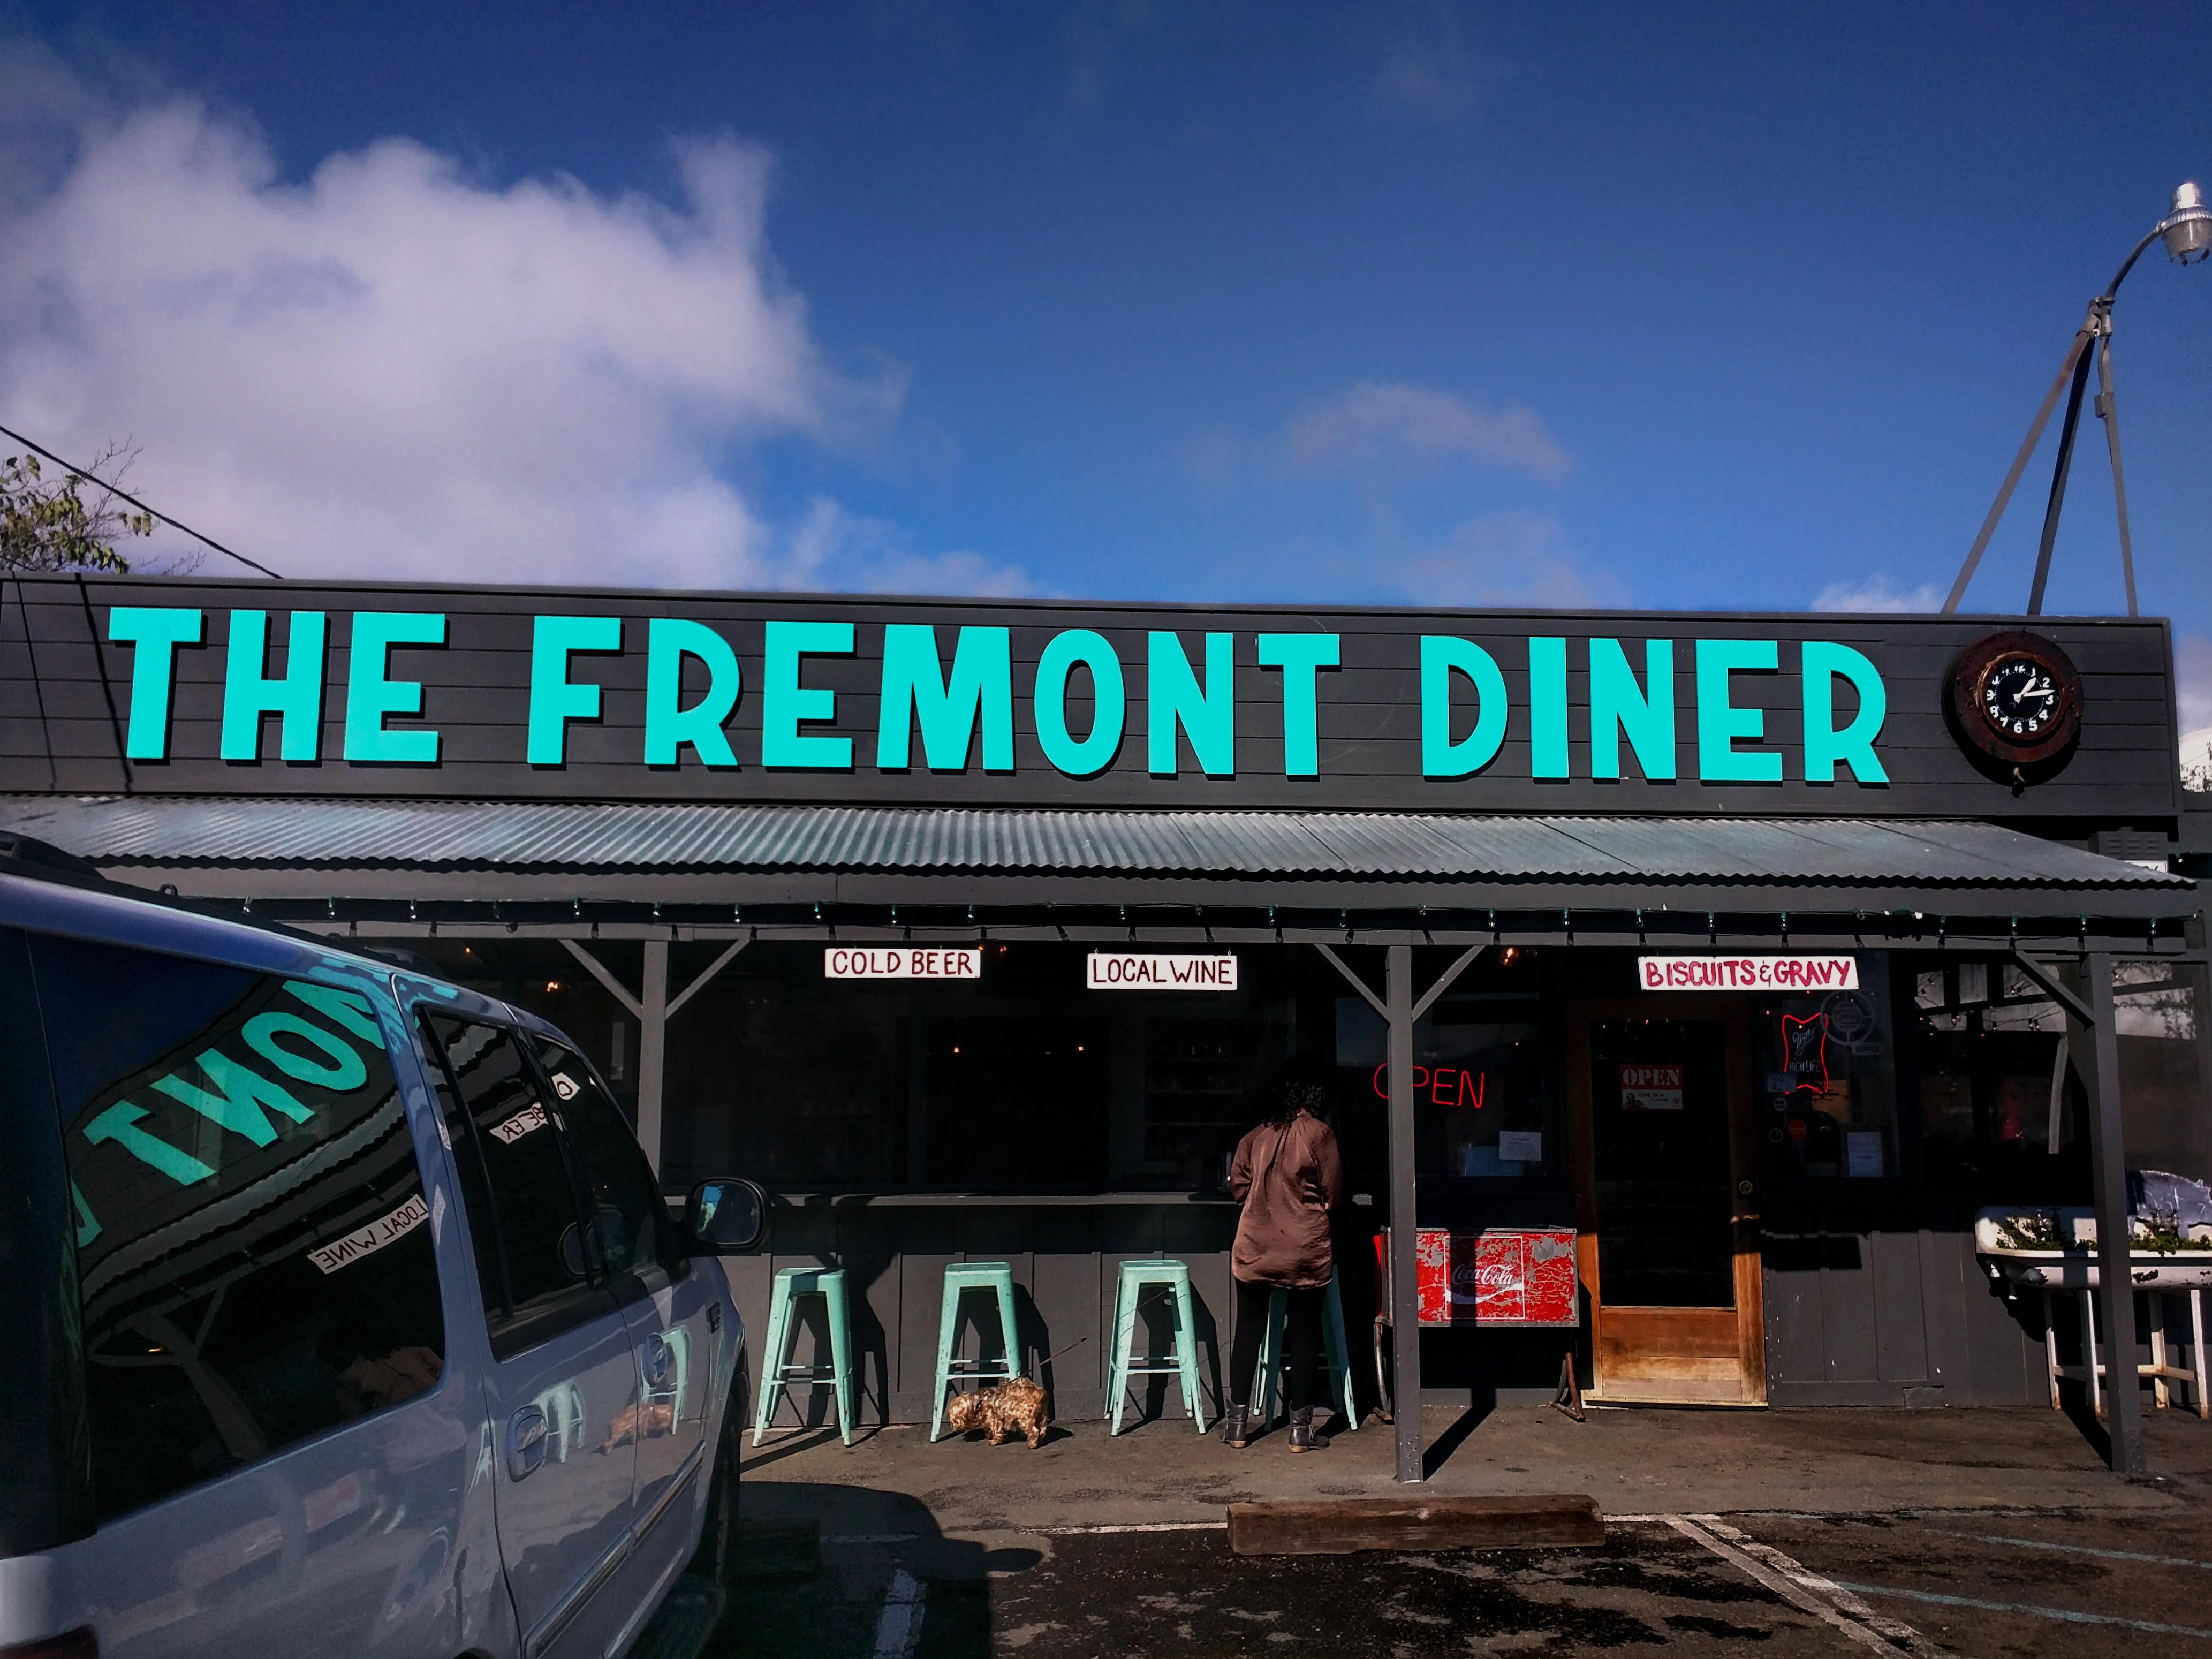 View of the Fremont Diner in Sonoma, California with their authentic Nashville Hot Chicken